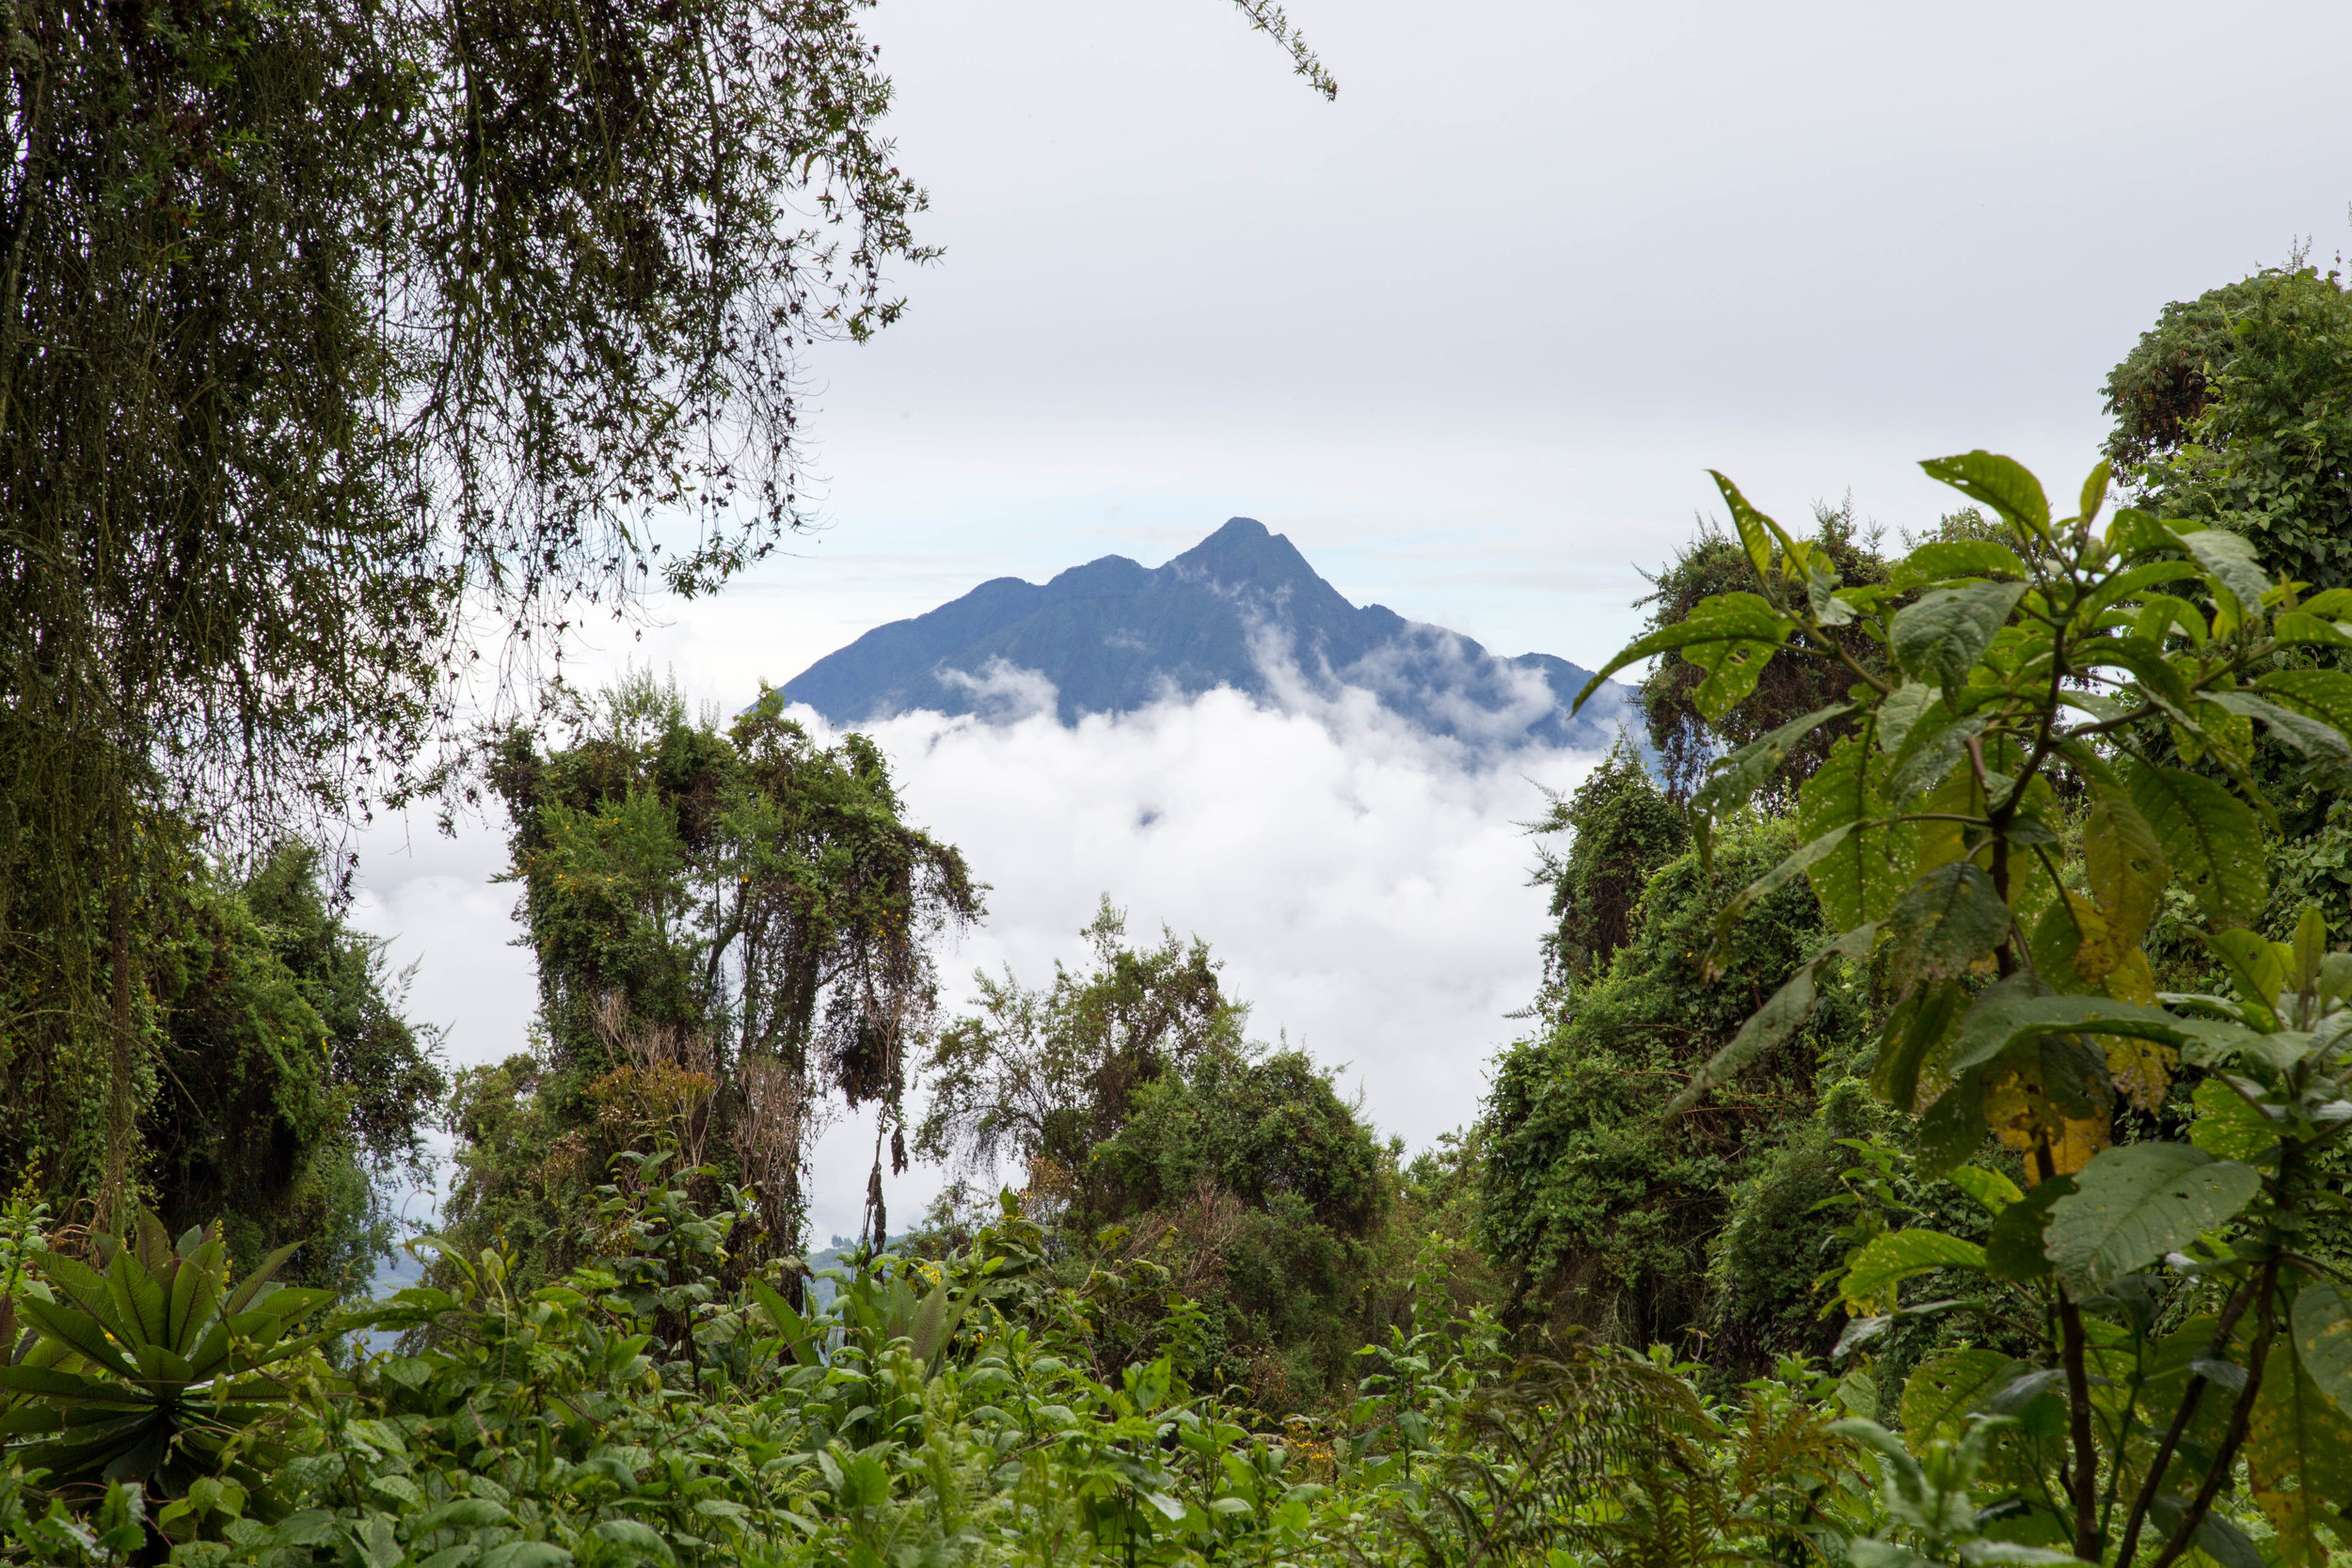 Mount Bisoke - A very rapid incline through a dense jungle to the top of a crater volcano.